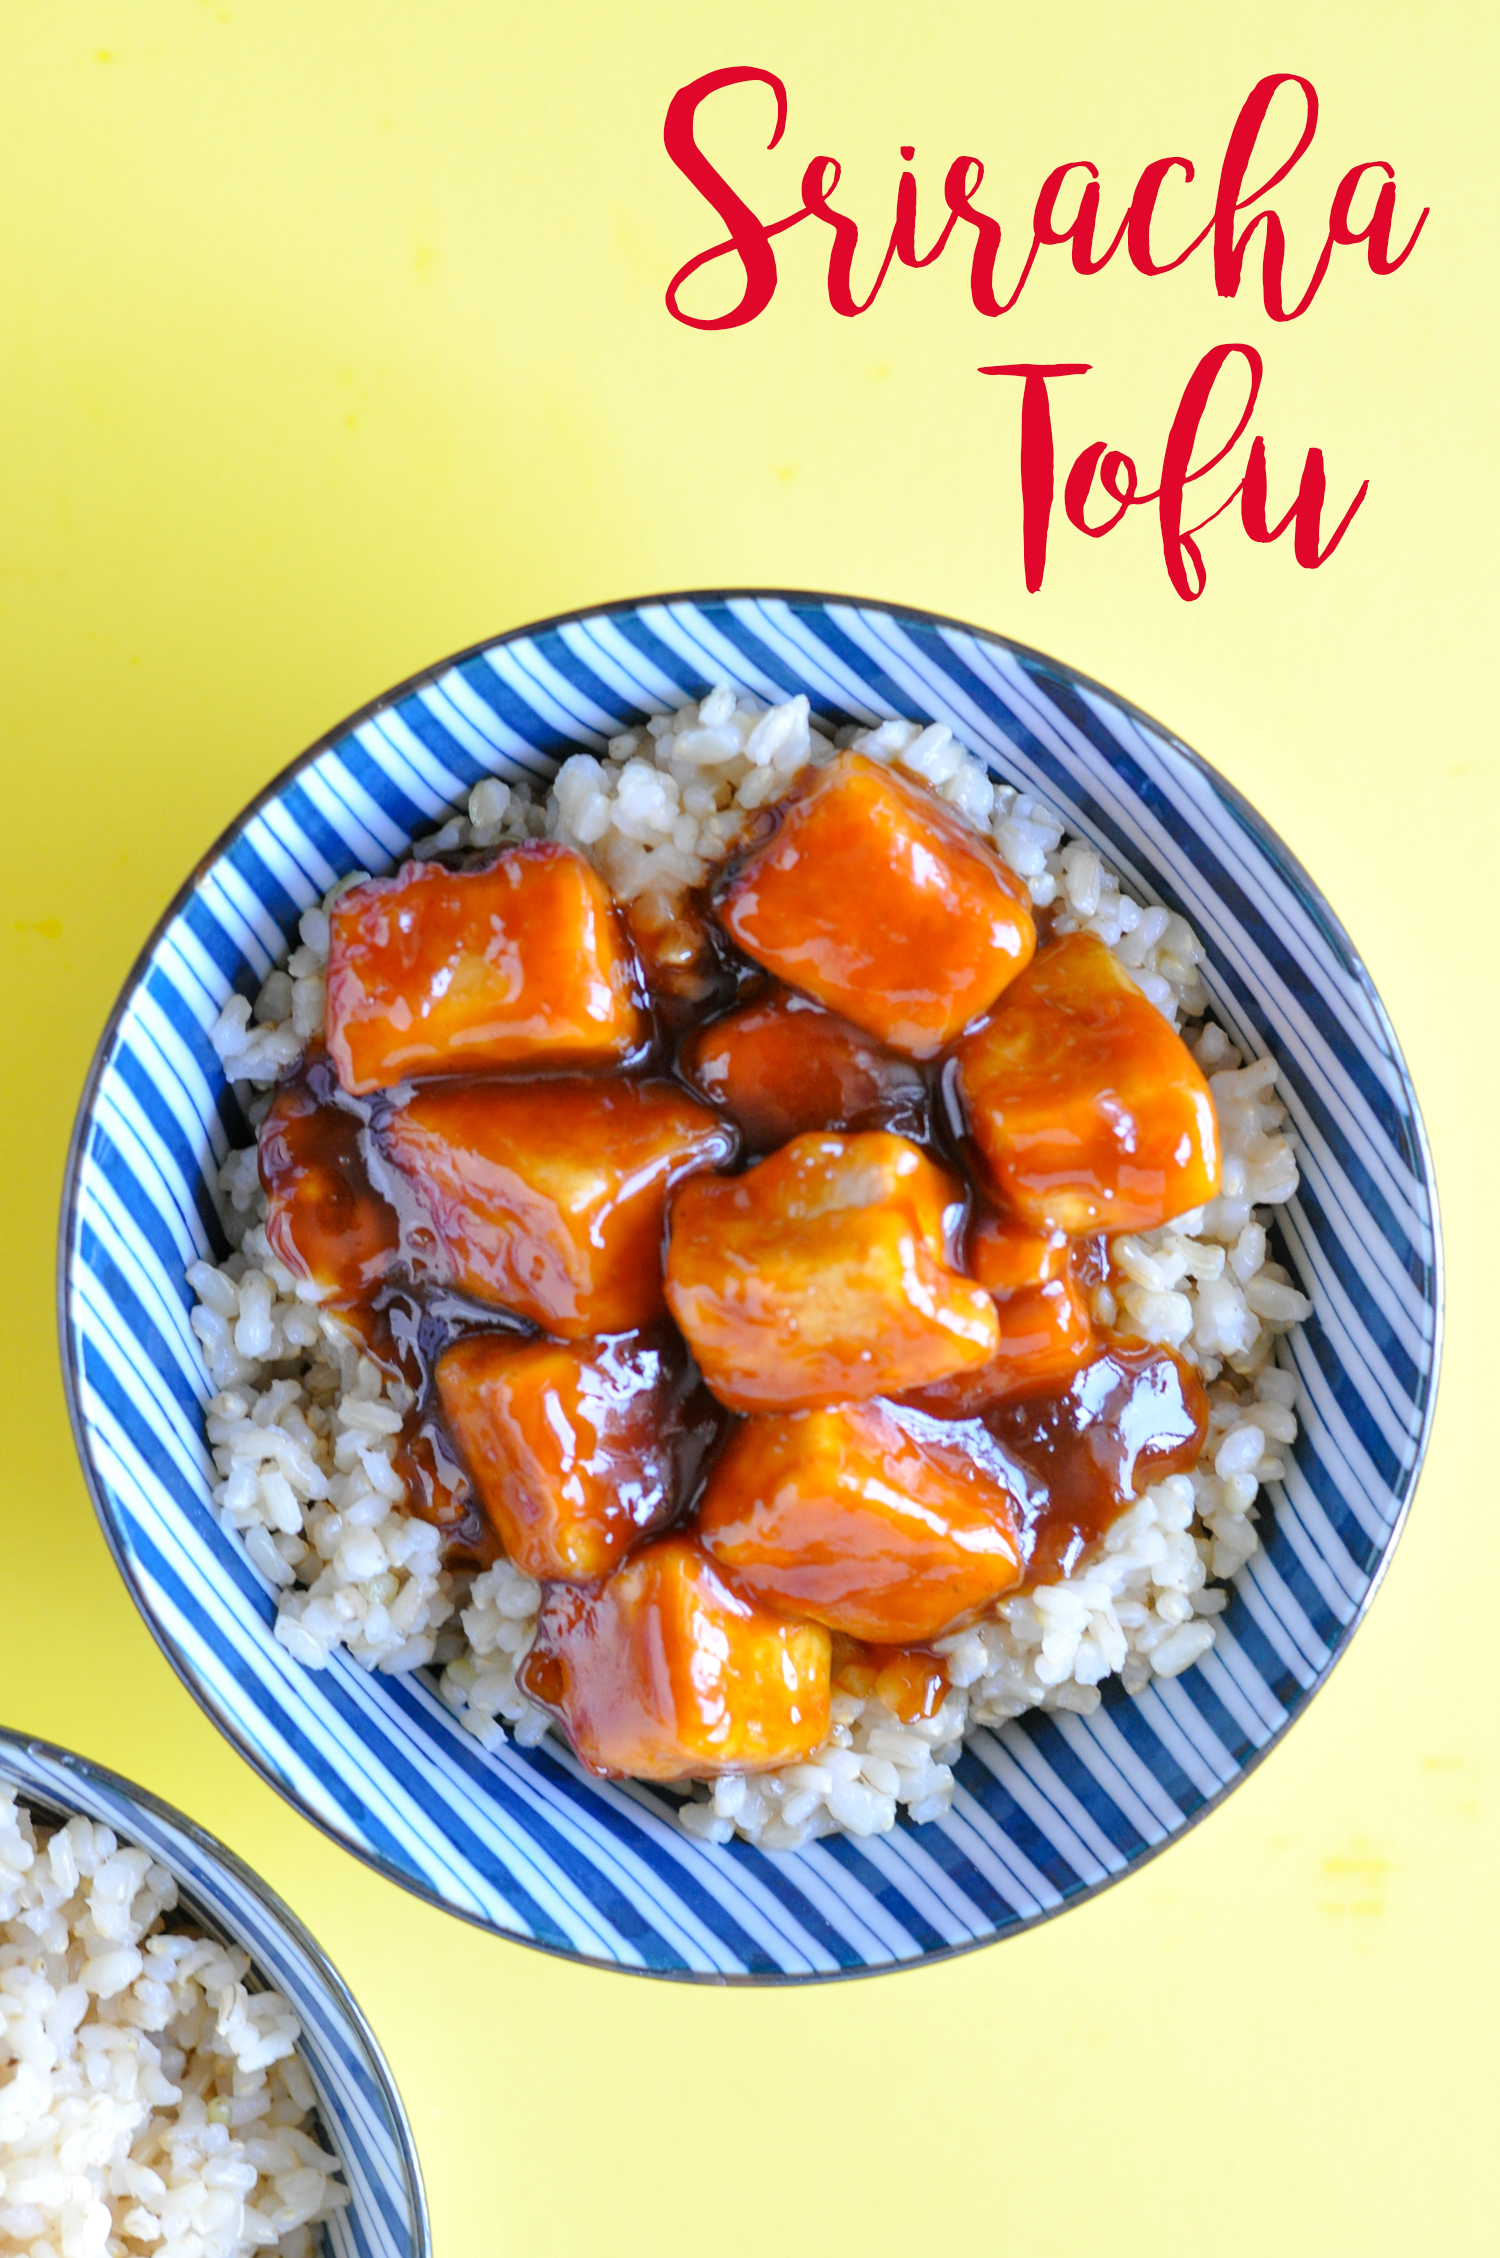 This Sriracha Tofu is perfect for all the Sriracha fans out there. Sriracha adds a really nice spicy kick to the sauce. #tofu #vegan #takeout #Asian #sriracha #vegetarian #easyrecipes #recipes